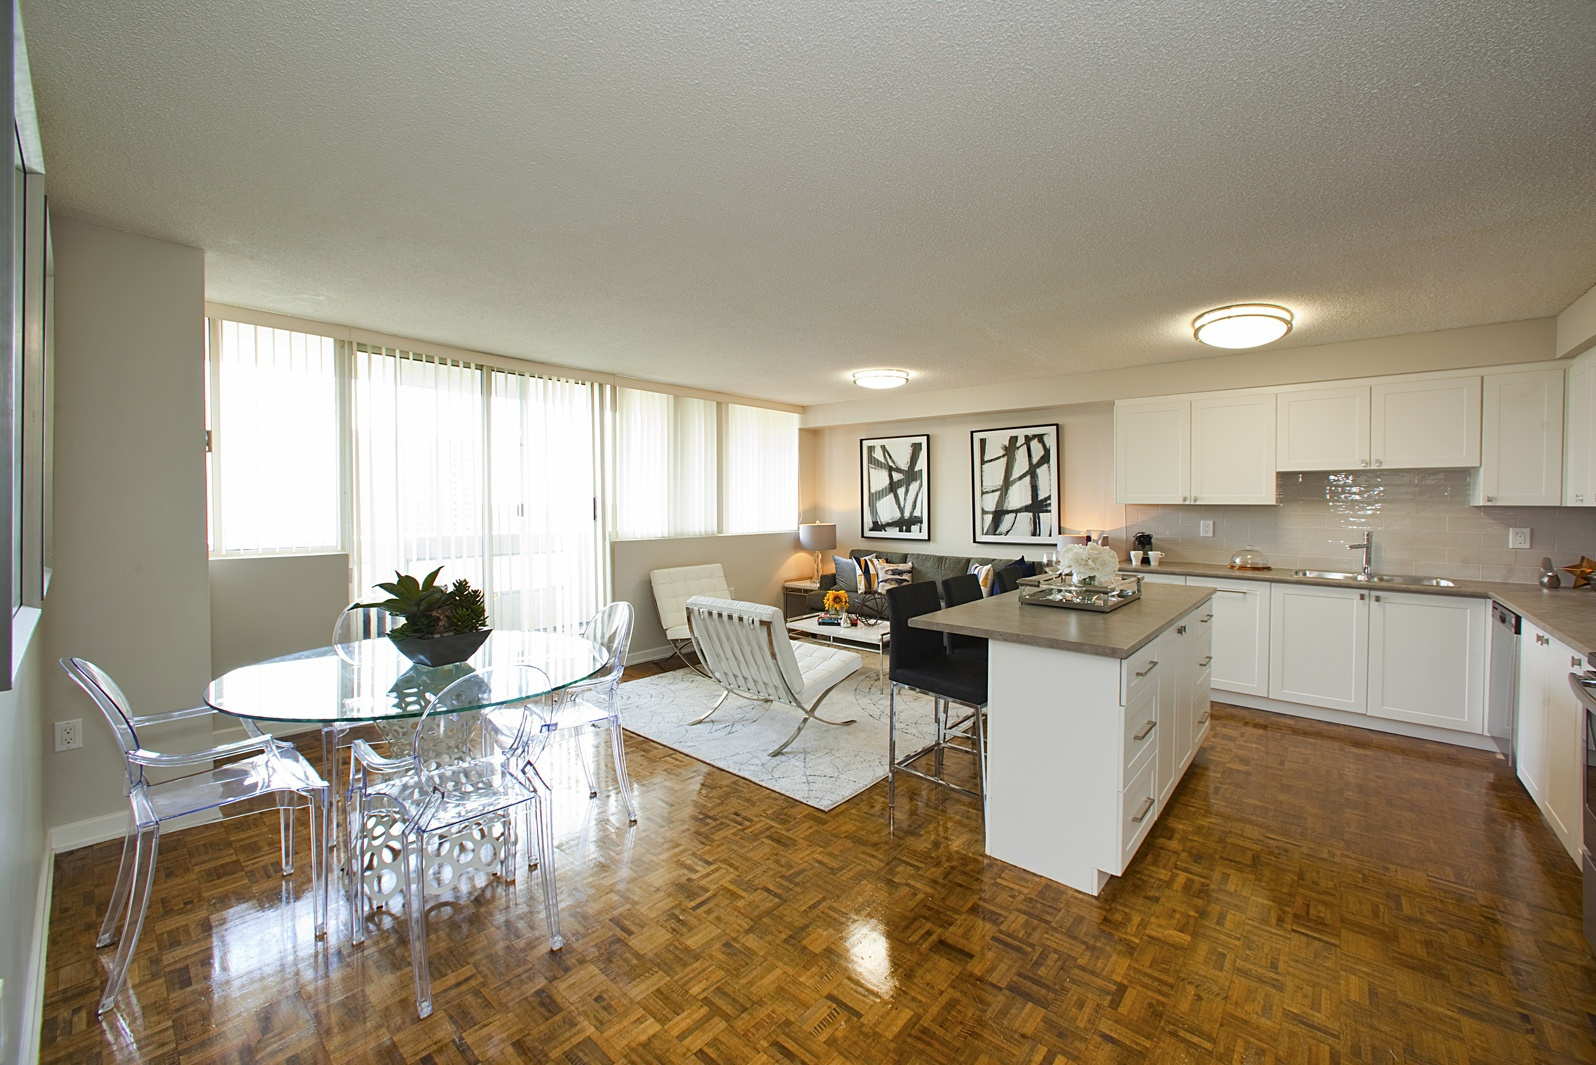 3620 Kaneff Crescent in Mississauga, ON is Now Available